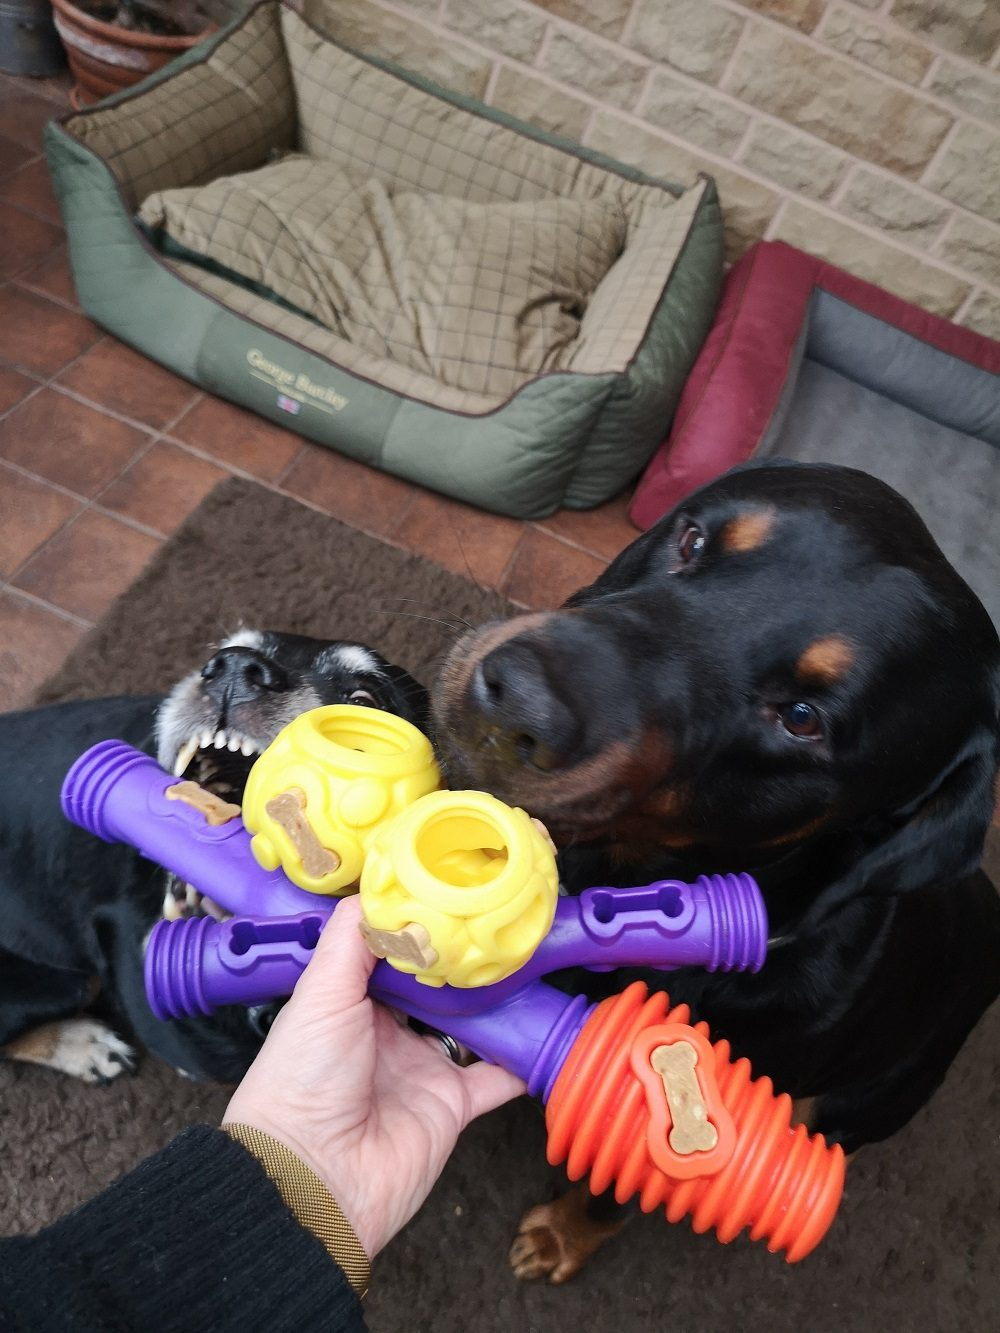 K9 Connectables Review: We Put the Interactive Dog Toys to the Test